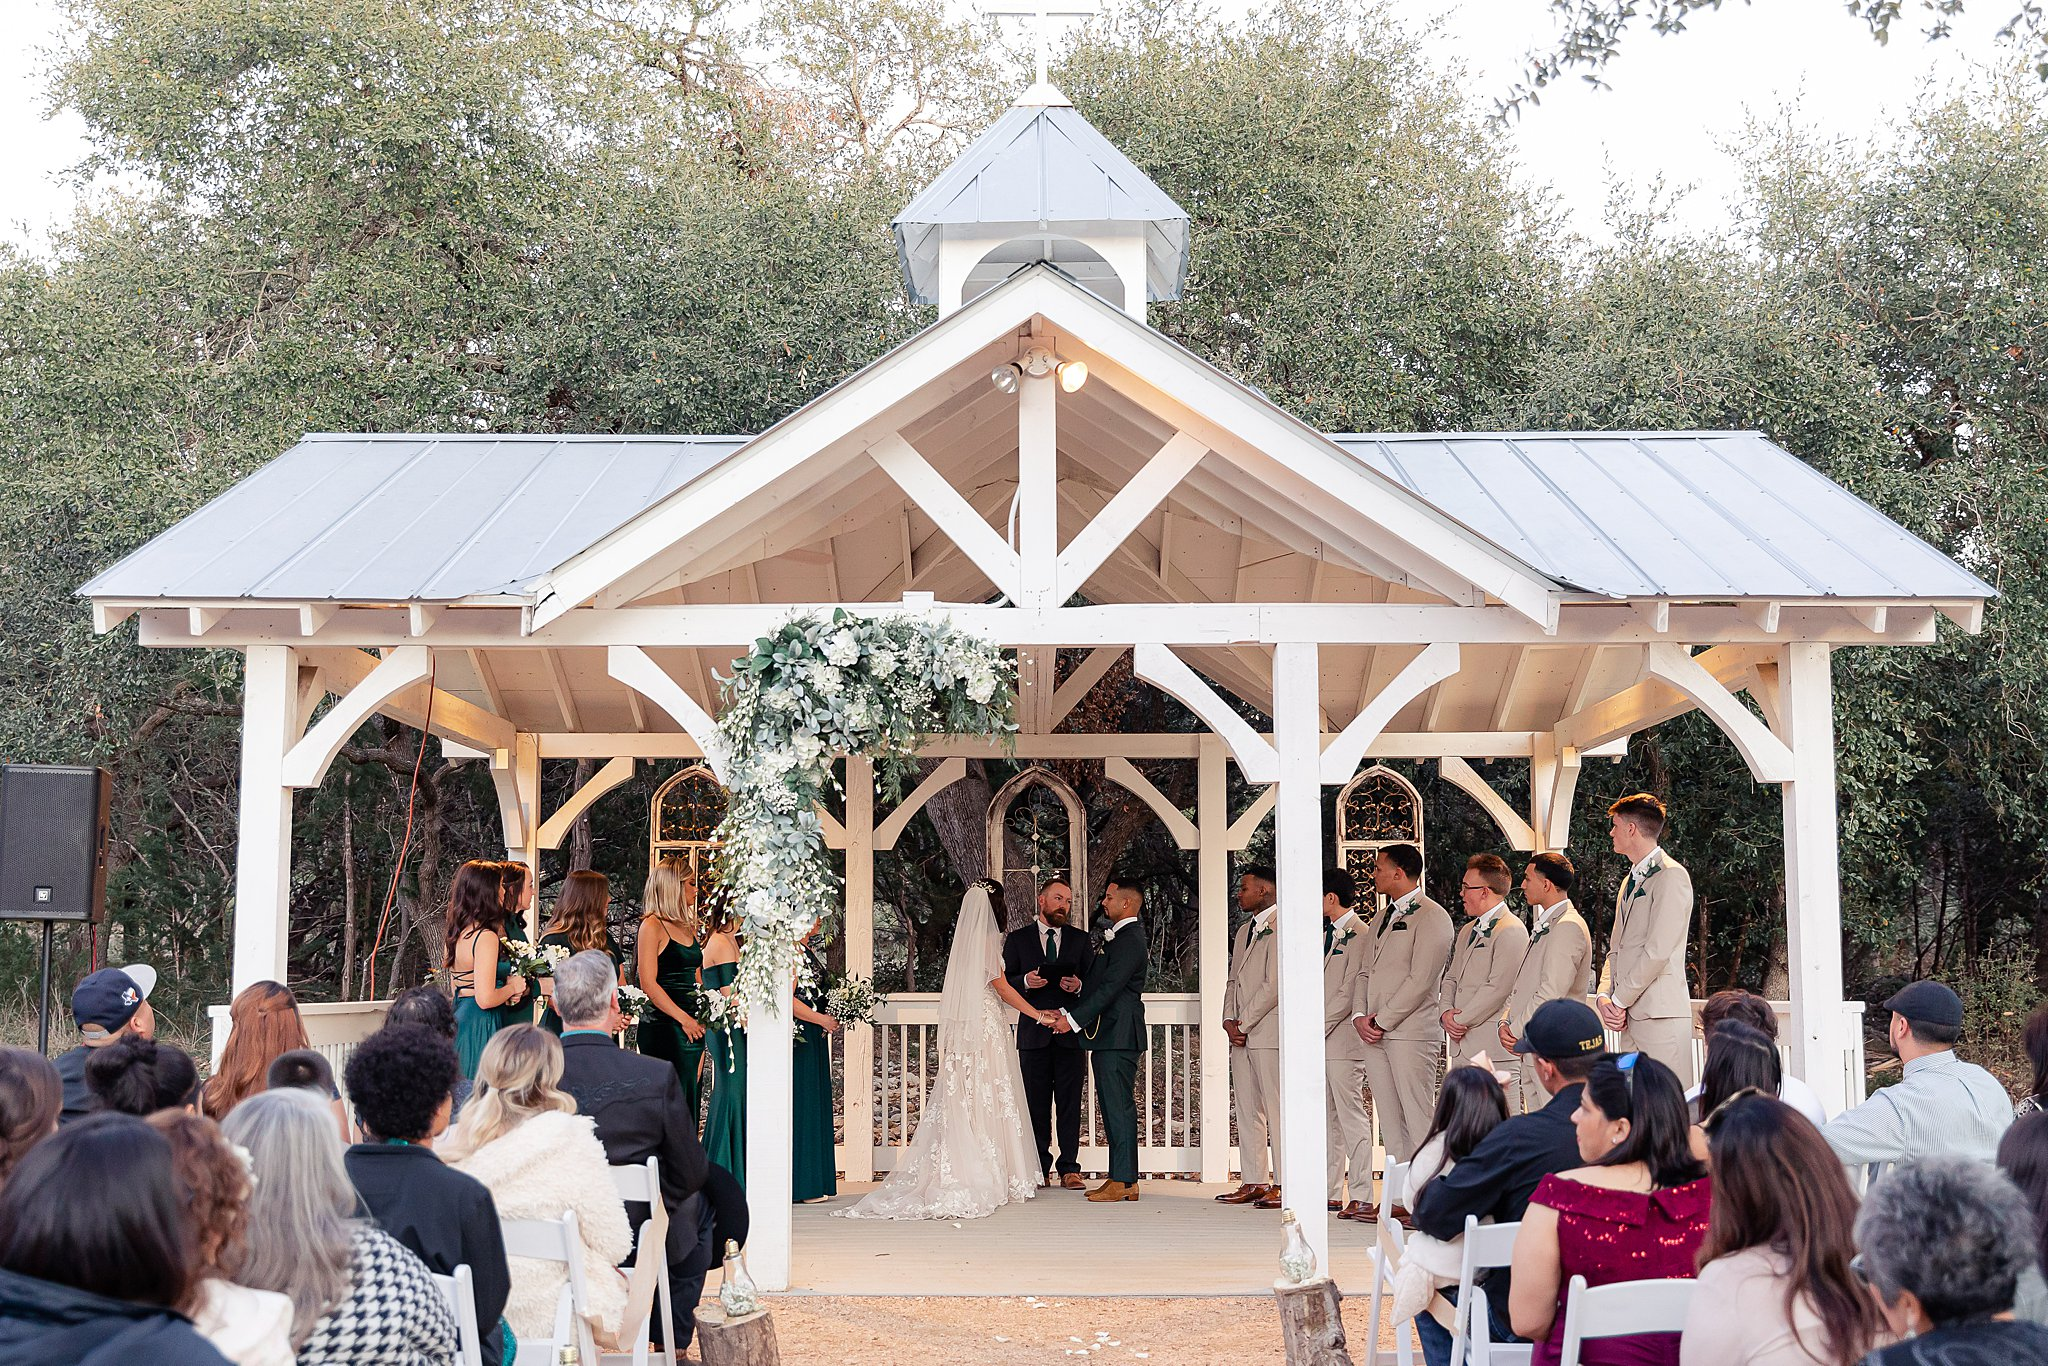 Carly-Barton-Photography-Texas-Wedding-Photographer-Western-Sky-Wedding-Event-Venue-Emerald-Green-Theme_0040.jpg